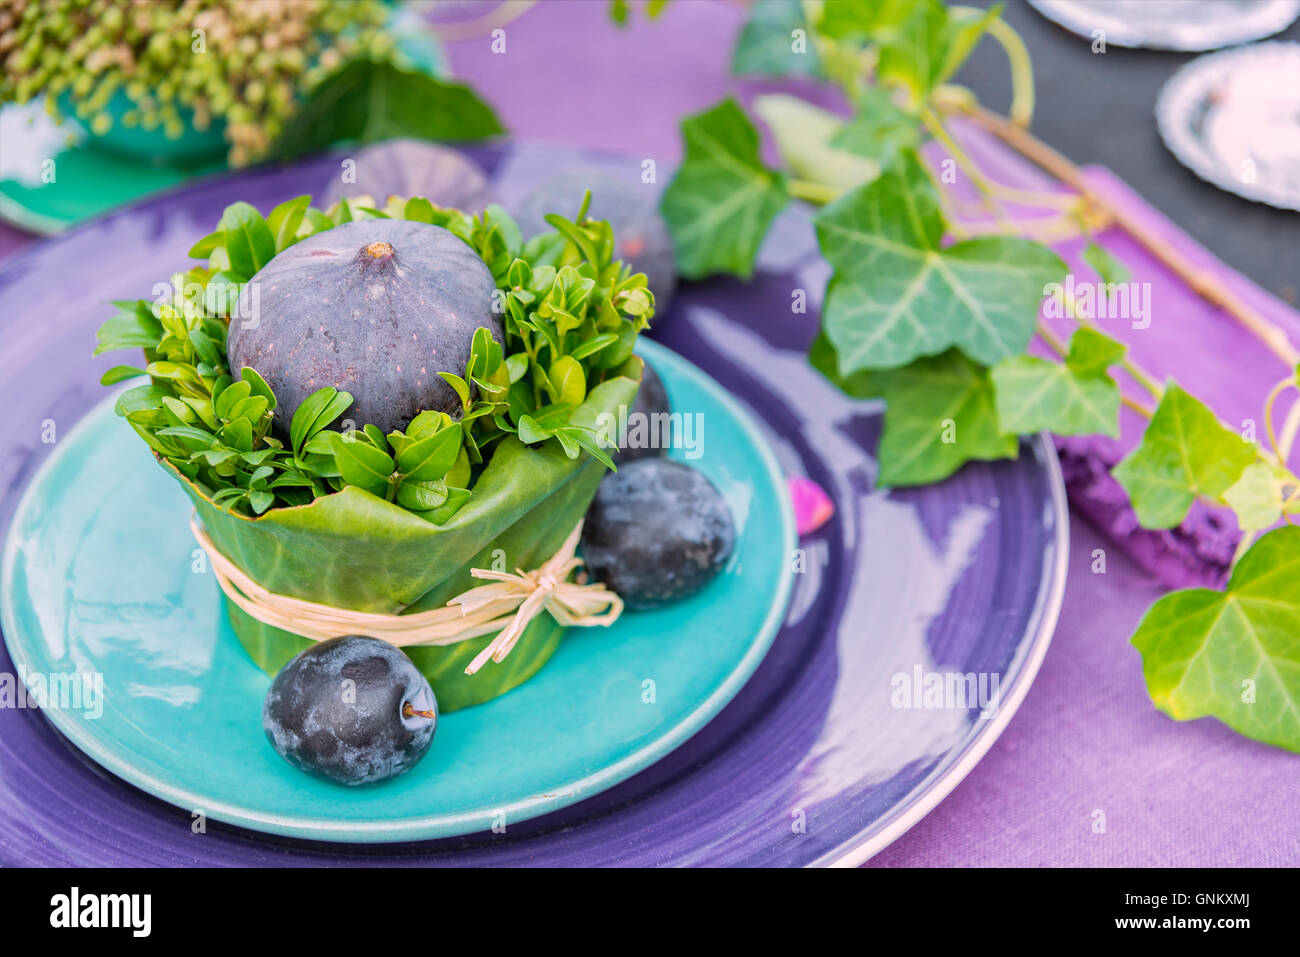 Image of a unique table setting for dinner or party. - Stock Image